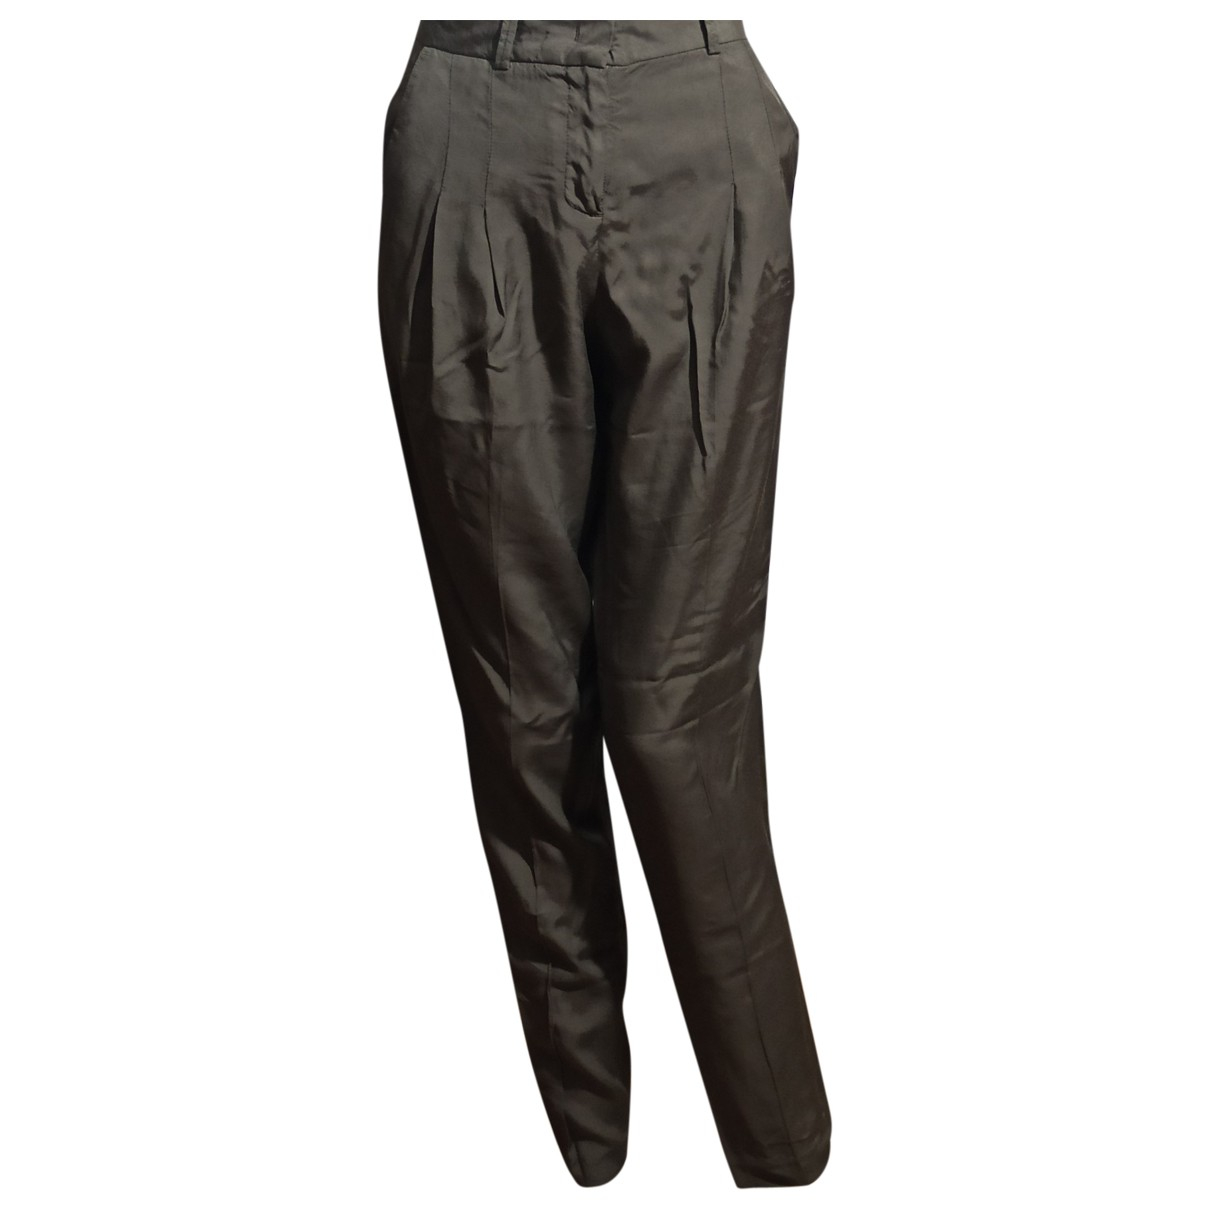 Maliparmi \N Khaki Trousers for Women 38 IT